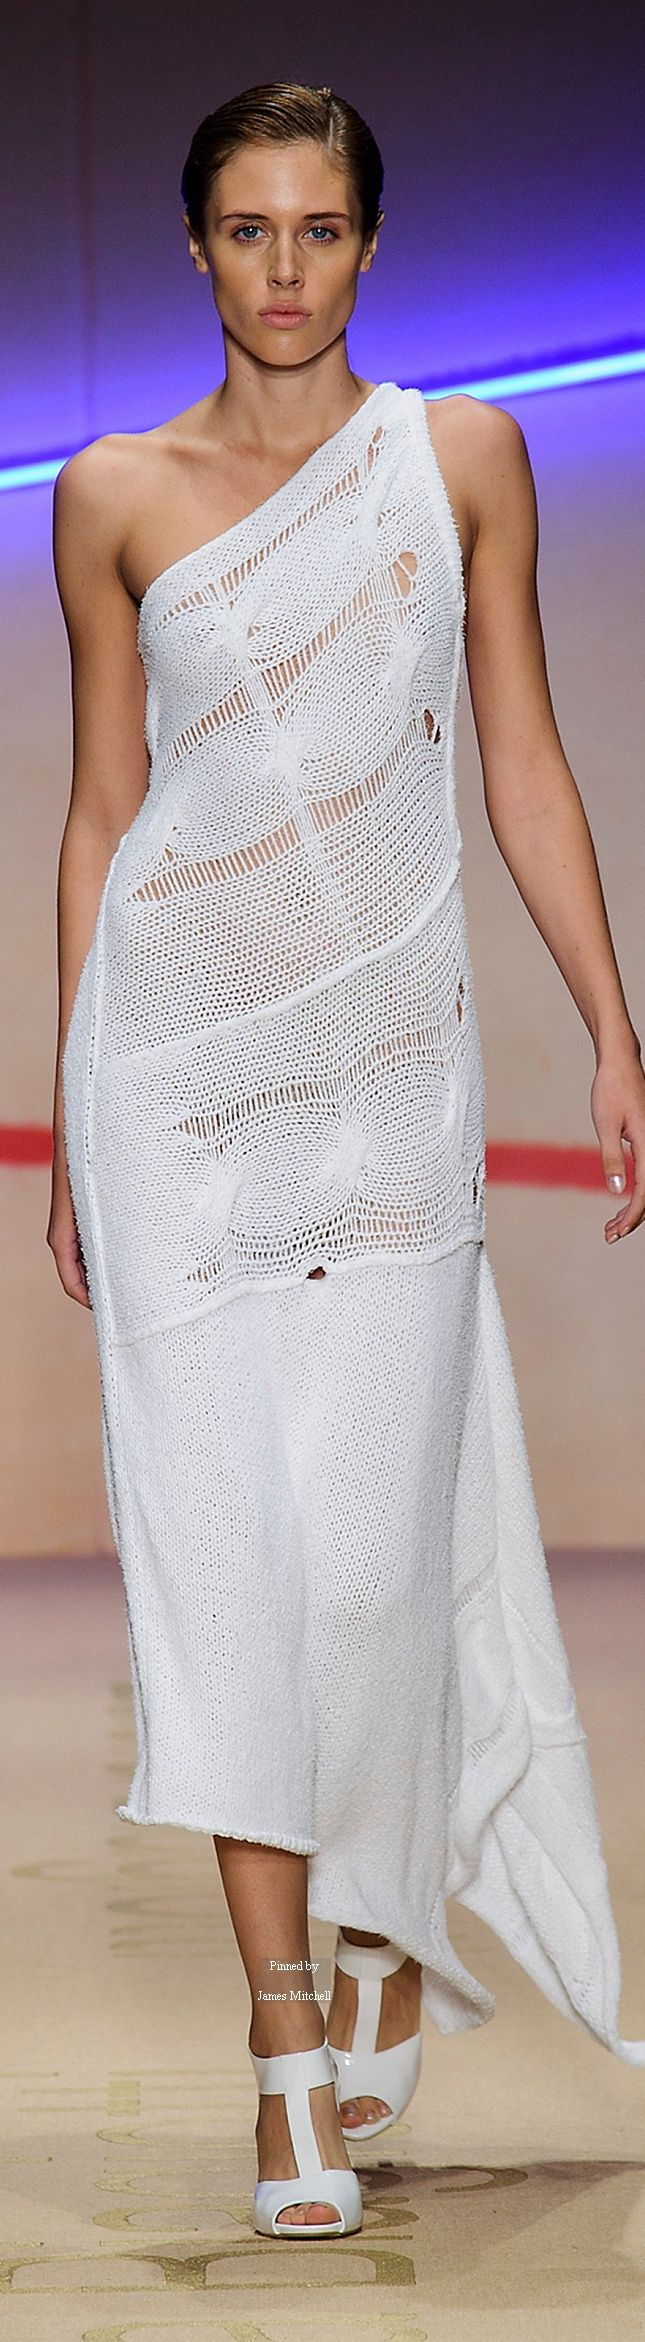 Laura Biagiotti Spring Summer 2015 Ready-To-Wear collection Keka❤❤❤